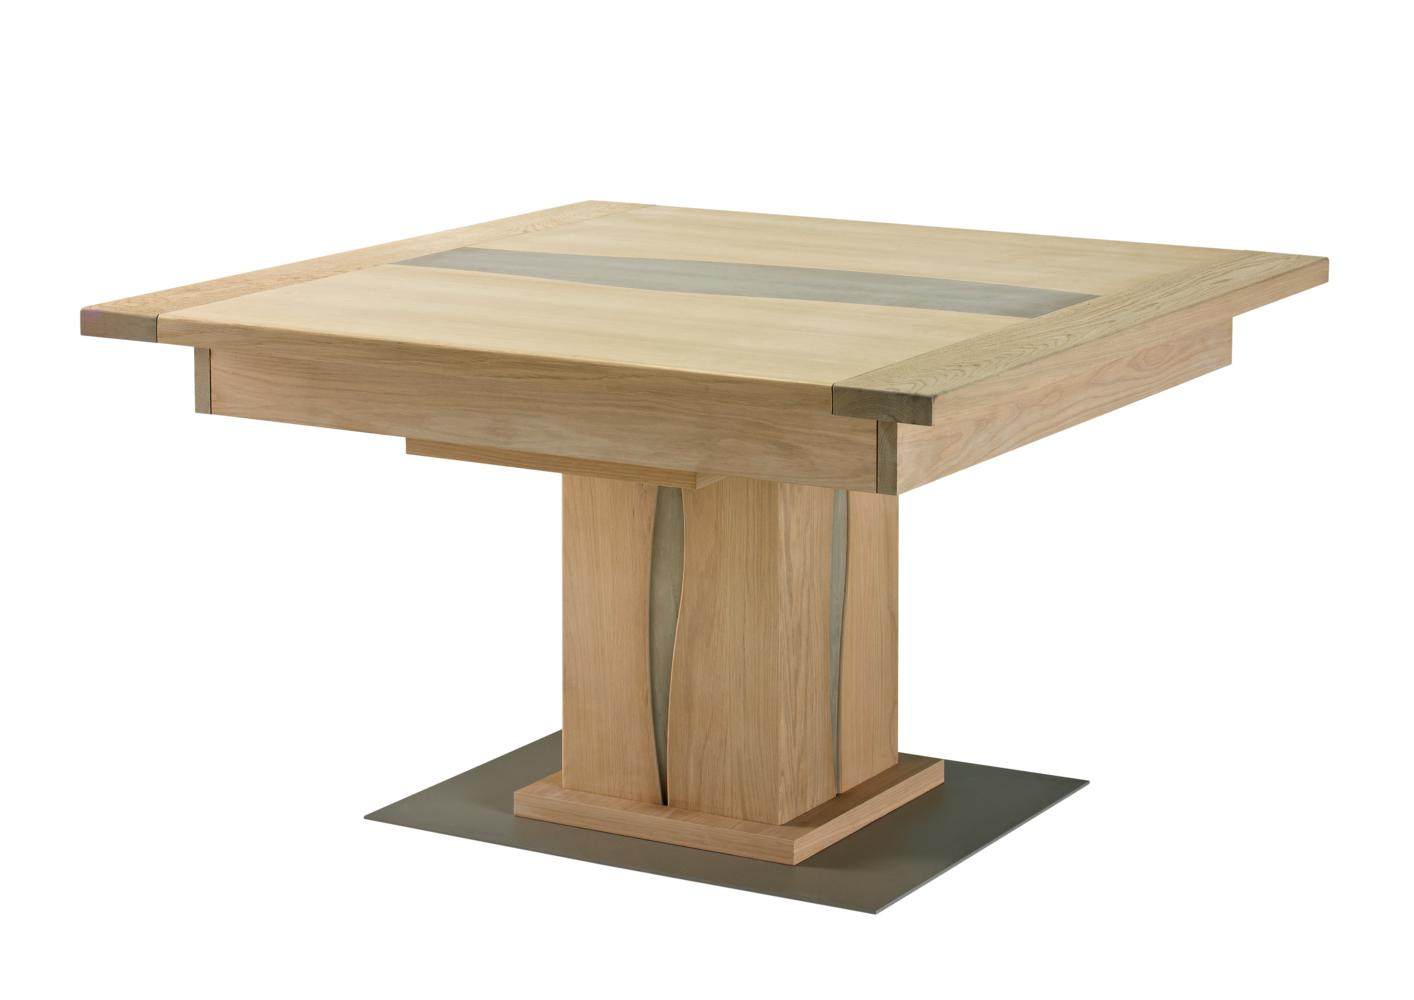 Table avec pied central for Table ronde bois pied central